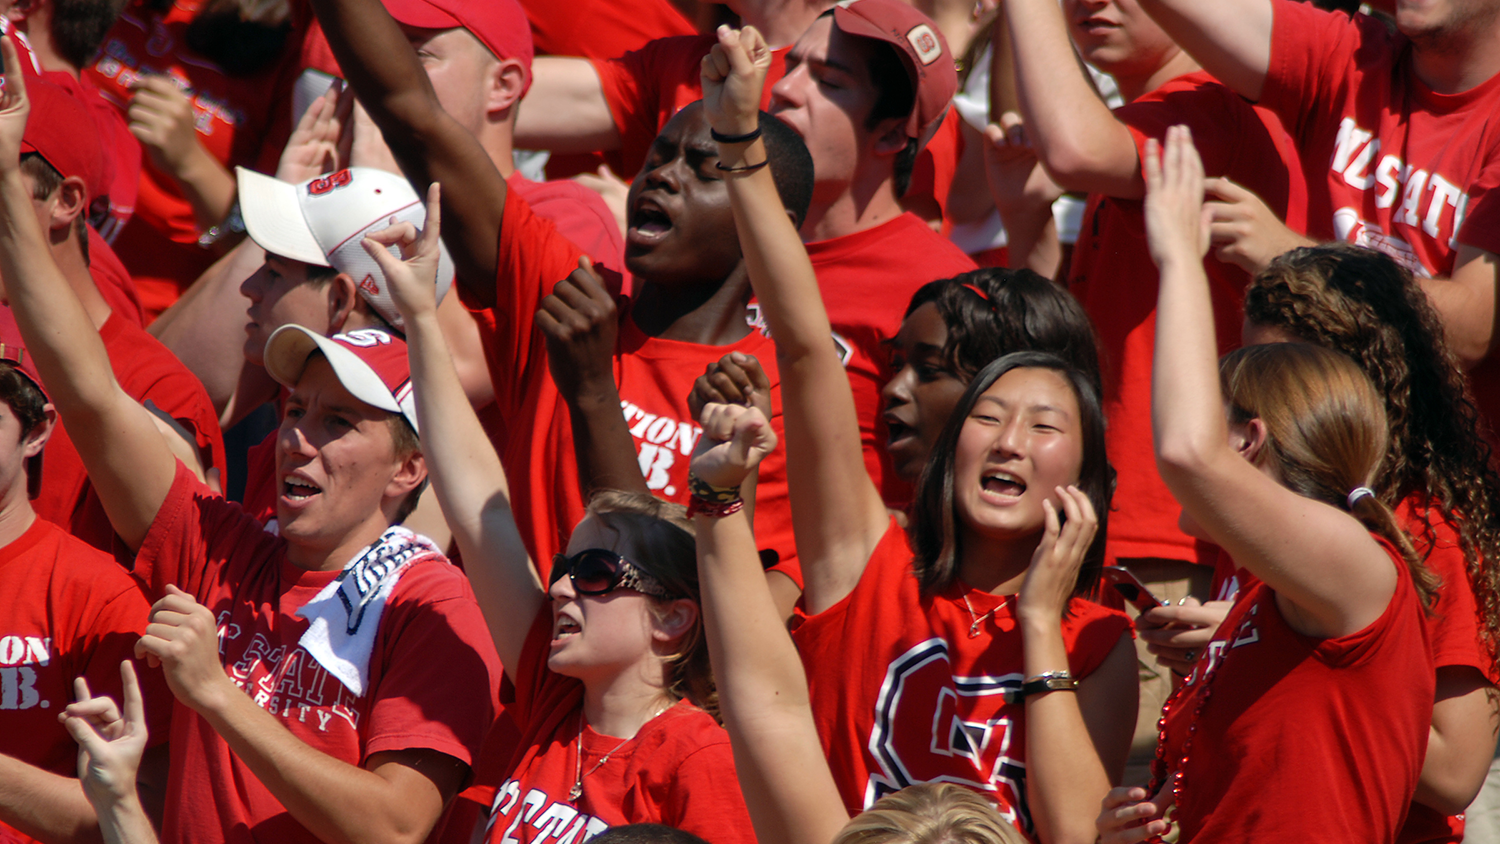 Wolfpack students cheer at athletic event